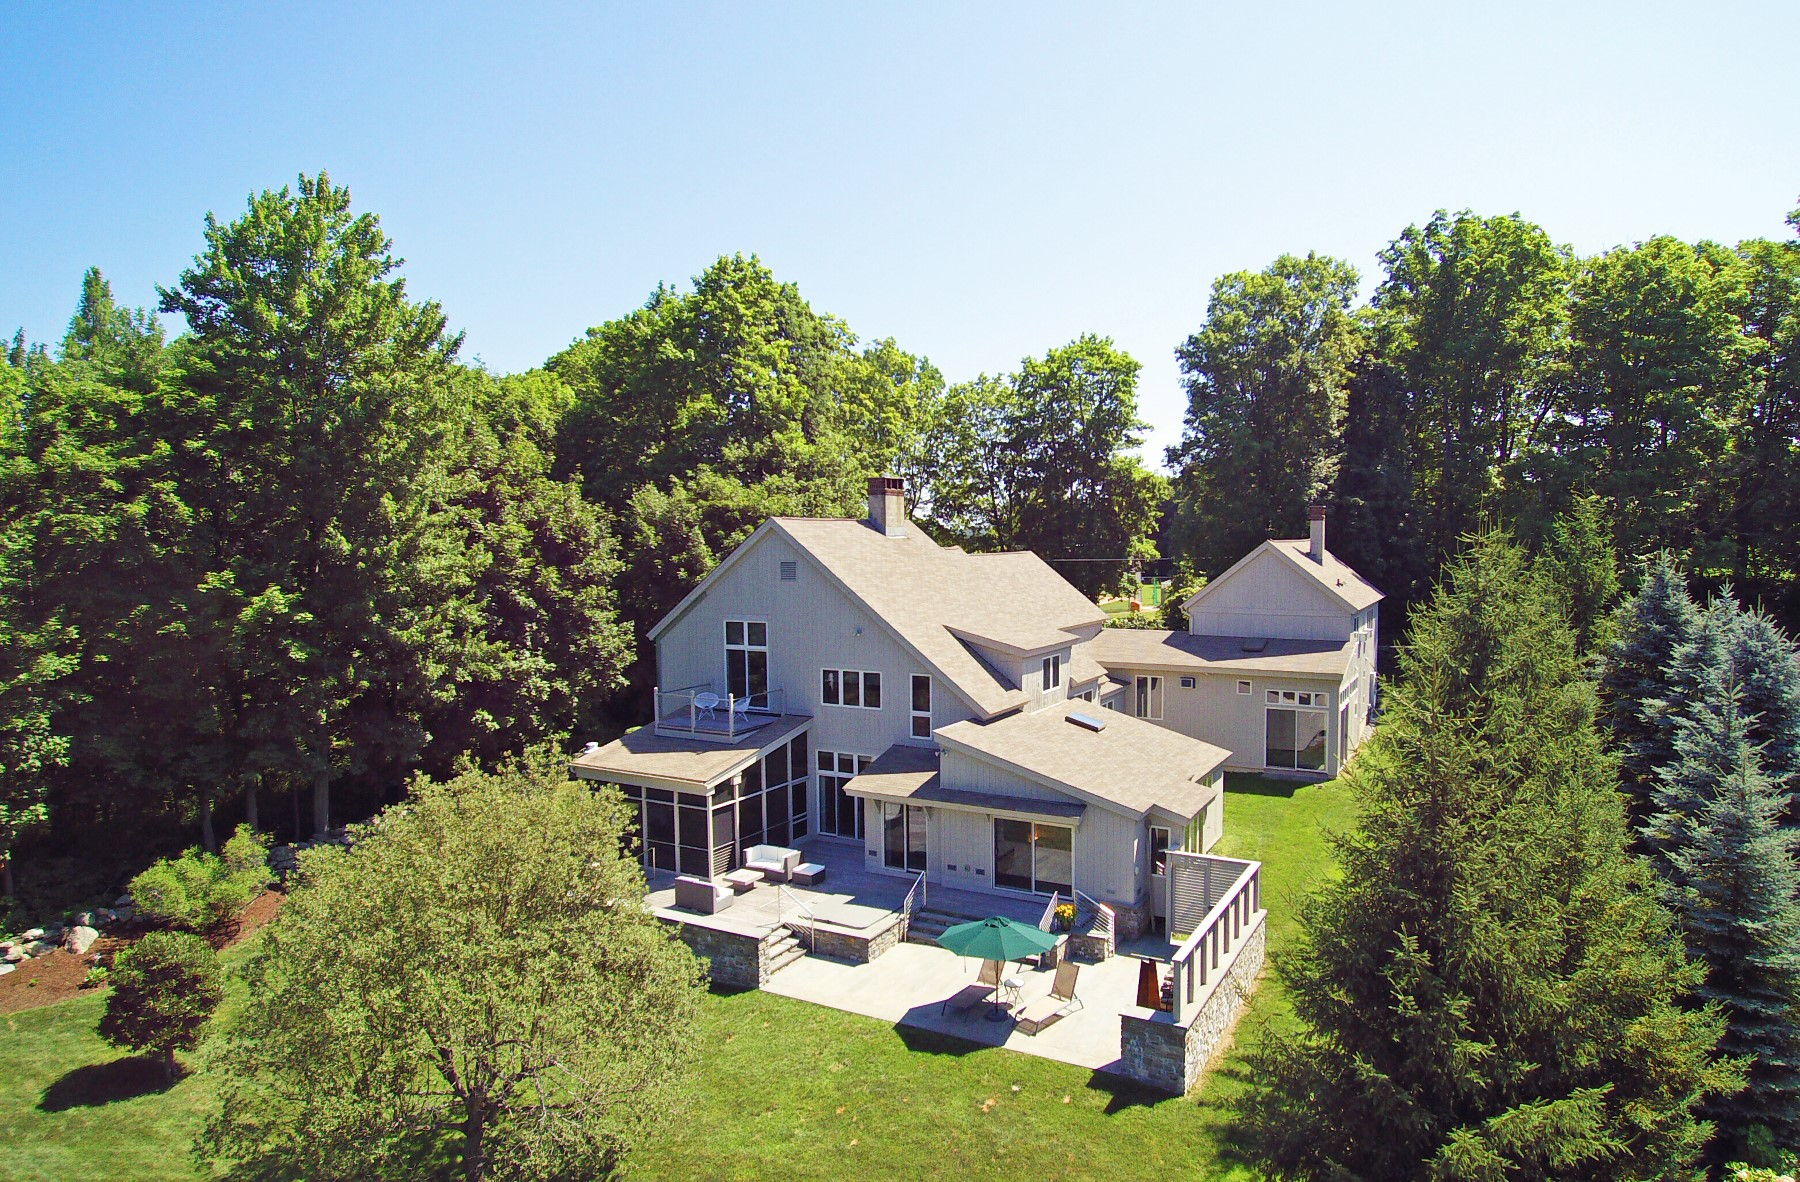 Single Family Home for Sale at In-town Custom Home with Guest Apartment 74 Prospect Ridge Ridgefield, Connecticut, 06877 United States